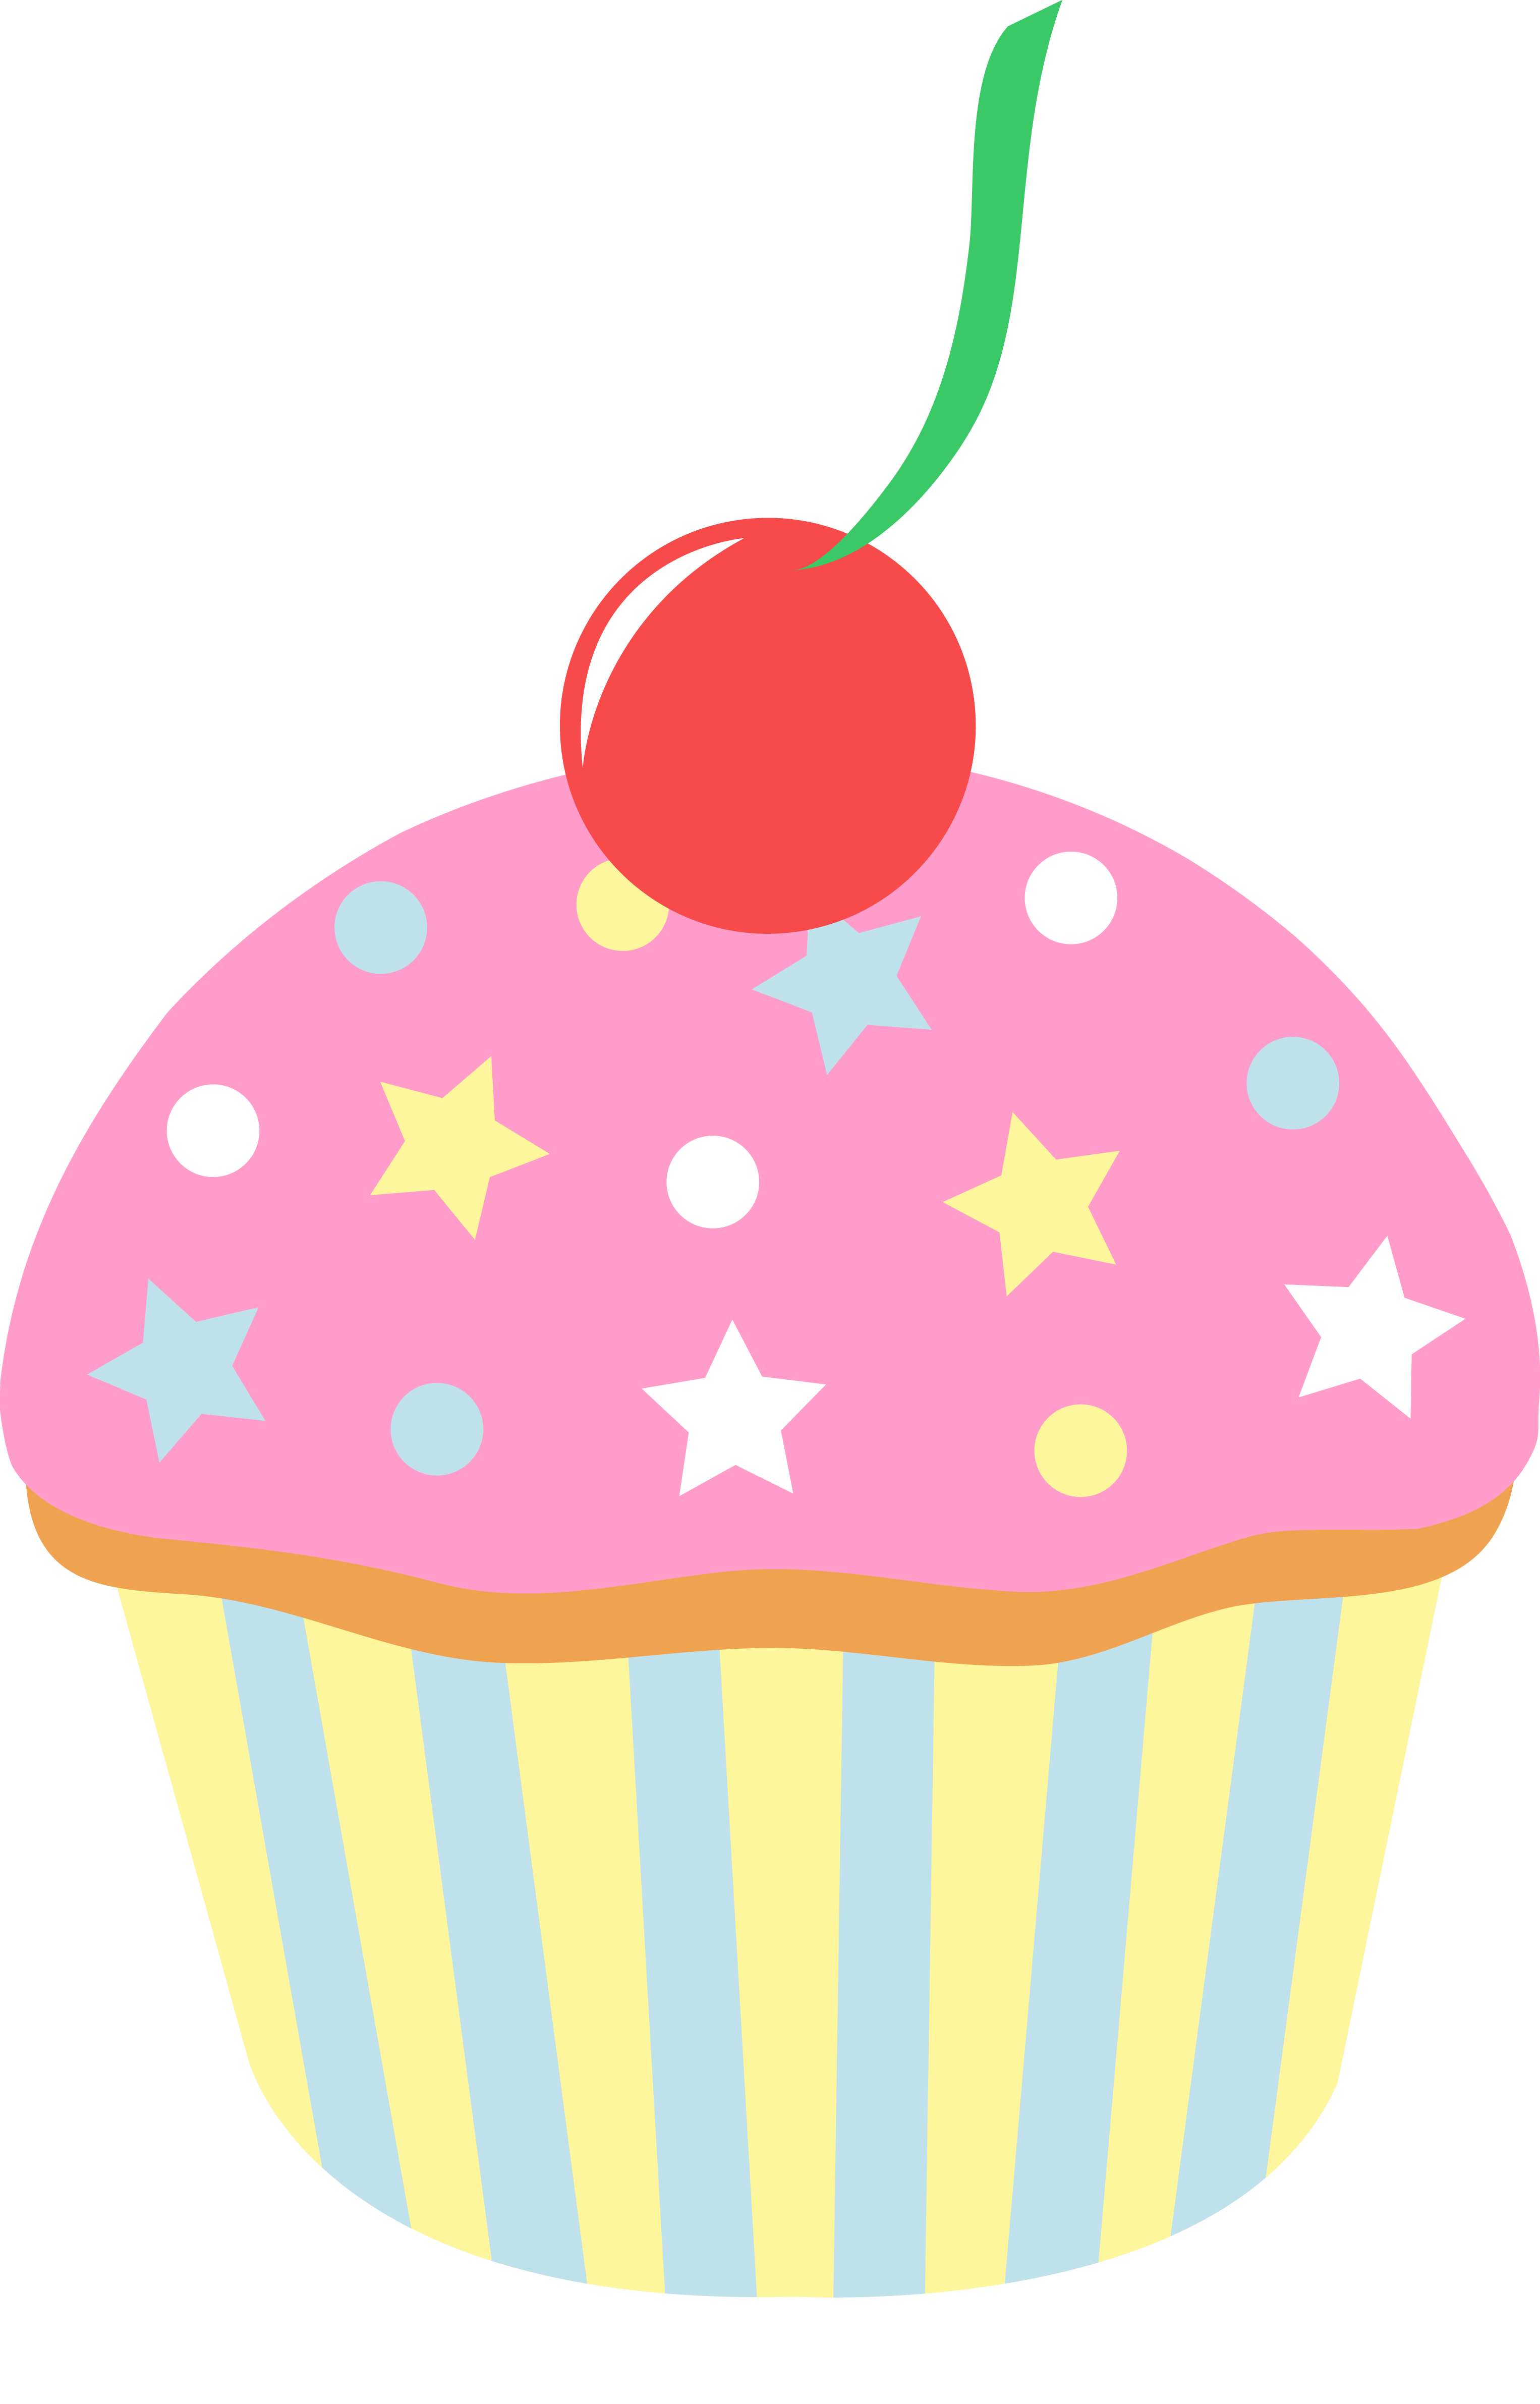 pink%20strawberry%20clipart